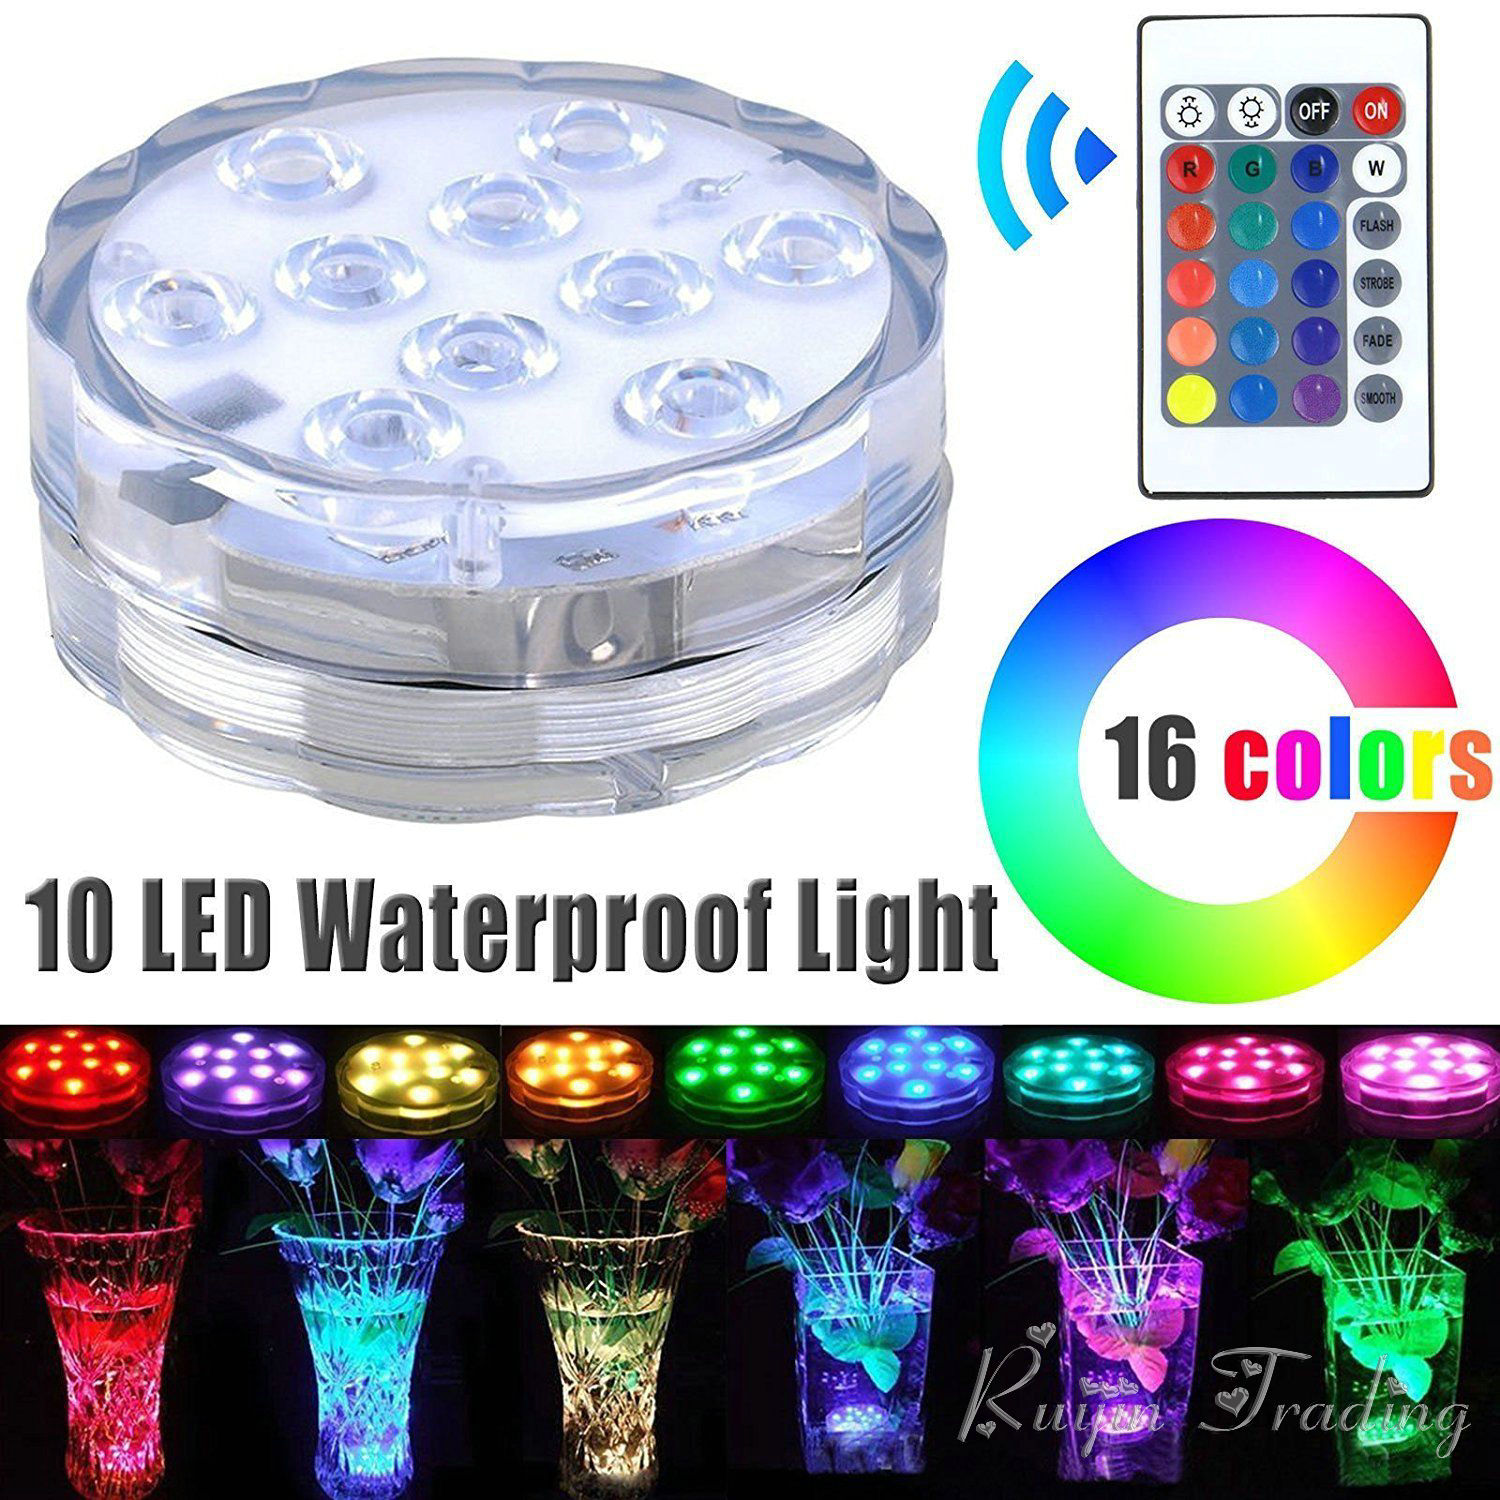 Led Underwater Lights 4w Rgb 10 Leds Light Battery Operated Waterproof Underwater Swimming 5050 Smd Diving Light Rgb Color Drop Shipping Wholesale